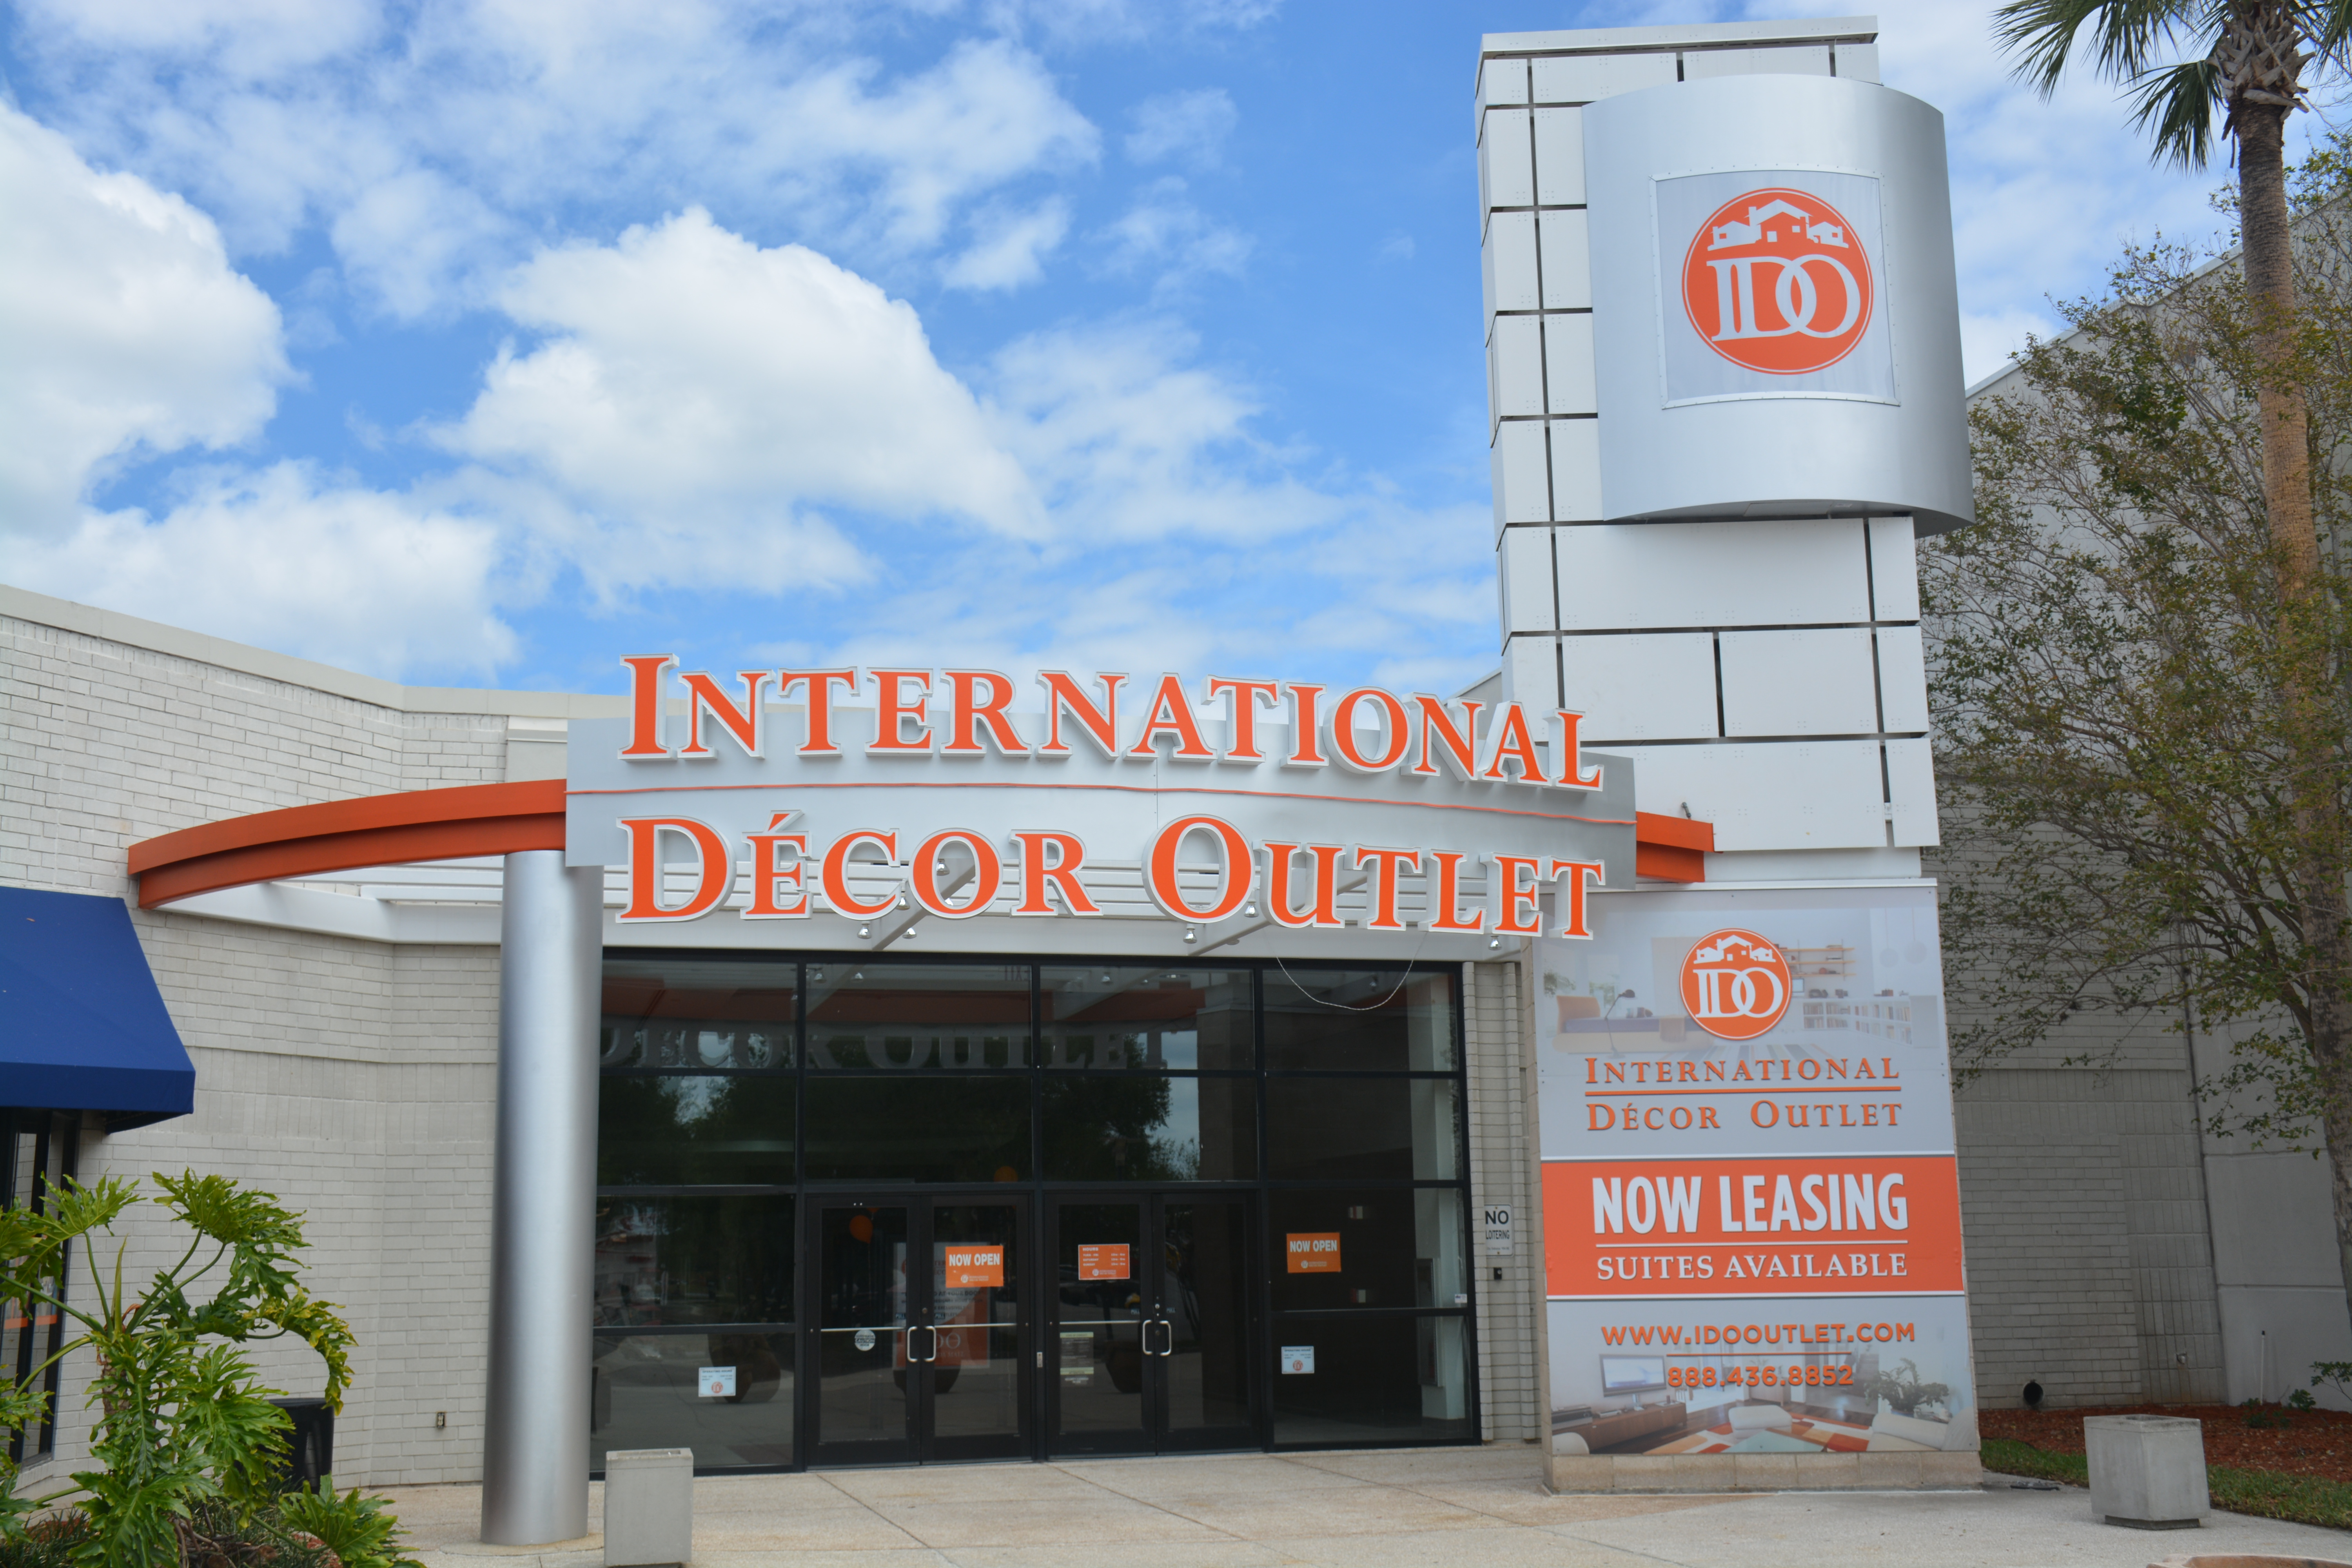 So we stopped by the new international decor outlet in for International decor outlet corp